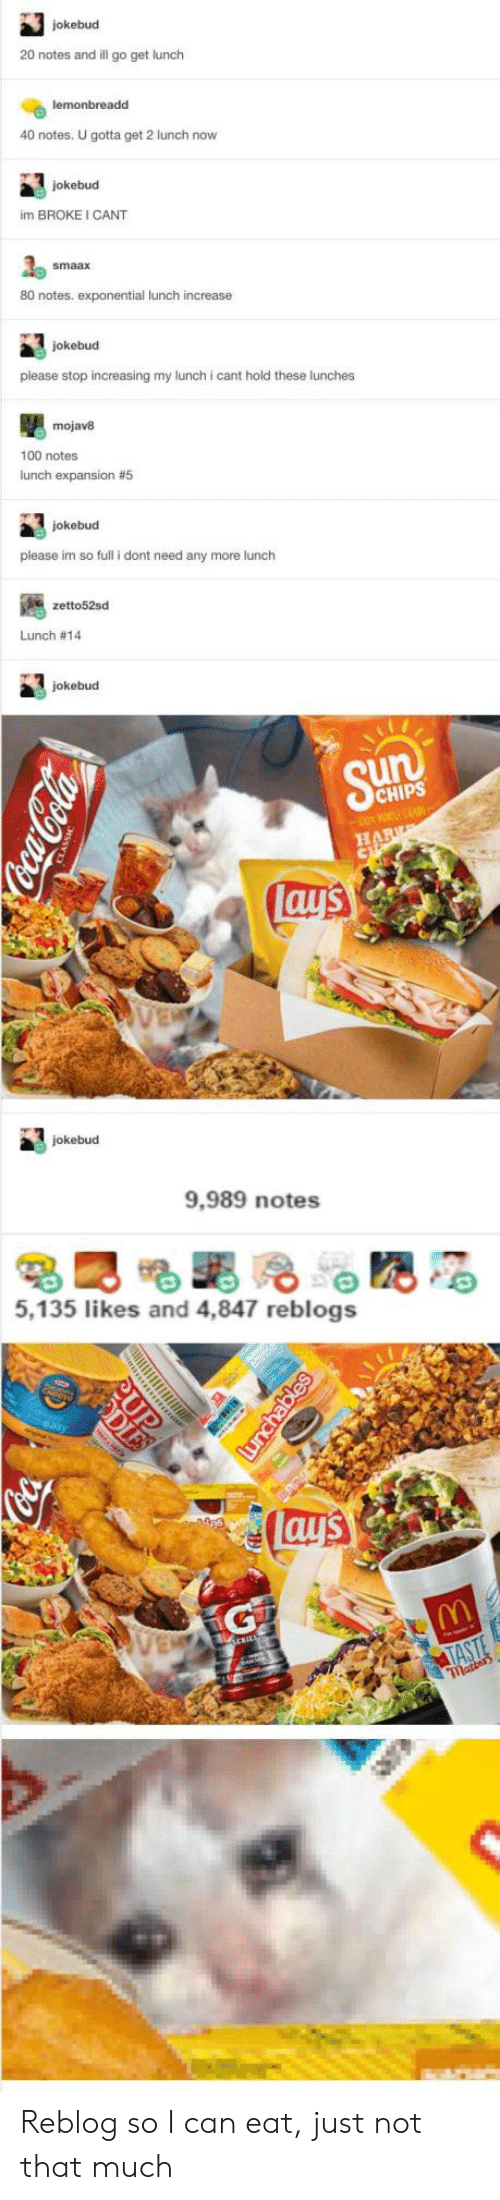 Lay's, Sun, and Chips: jokebud  20 notes and ill go get lunch  lemonbreadd  40 notes. U gotta get 2 lunch now  jokebud  im BROKE I CANT  80 notes. exponential lunch increase  jokebud  please stop increasing my lunch i cant hold these lunches  mojav8  100 notes  lunch expansion # 5  jokebud  please im so full i dont need any more lunch  zetto52sd  Lunch # 14  jokebud  Sun  CHIPS  00 WLE GRA-  HAR  lay's  jokebud  9,989 notes  5,135 likes and 4,847 reblogs  ay's  TASTE  matters  CocaCela  LES  unchables Reblog so I can eat, just not that much